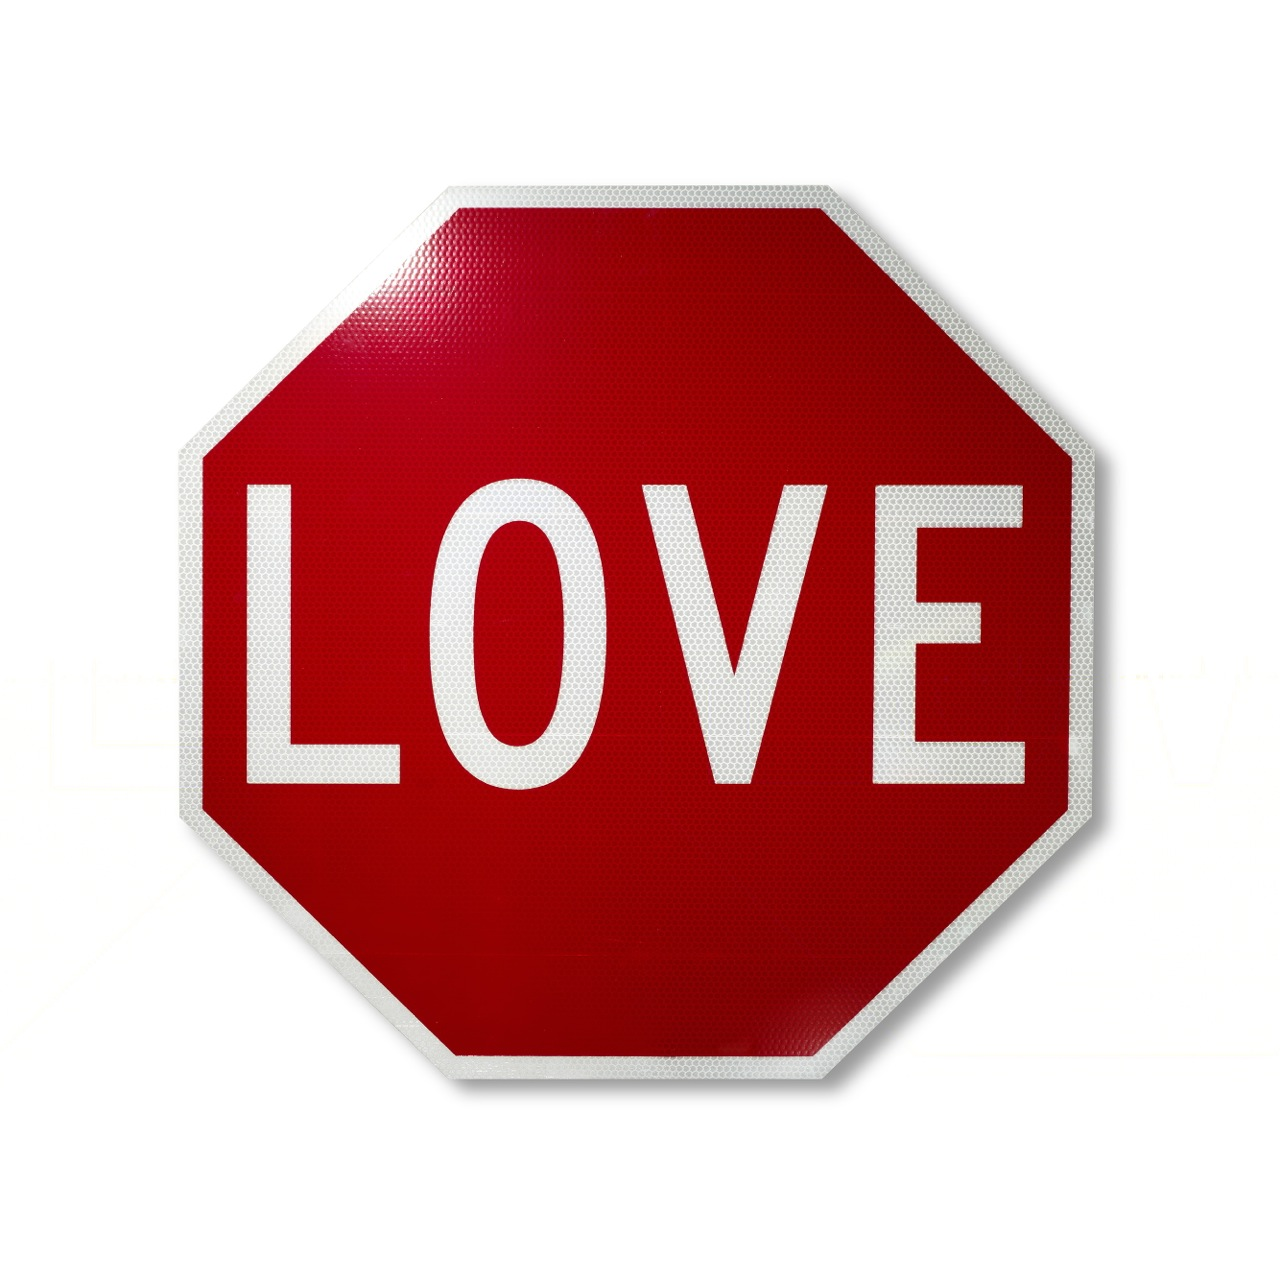 Love Sign - Stop! In the Name of Love - Alan James 2003